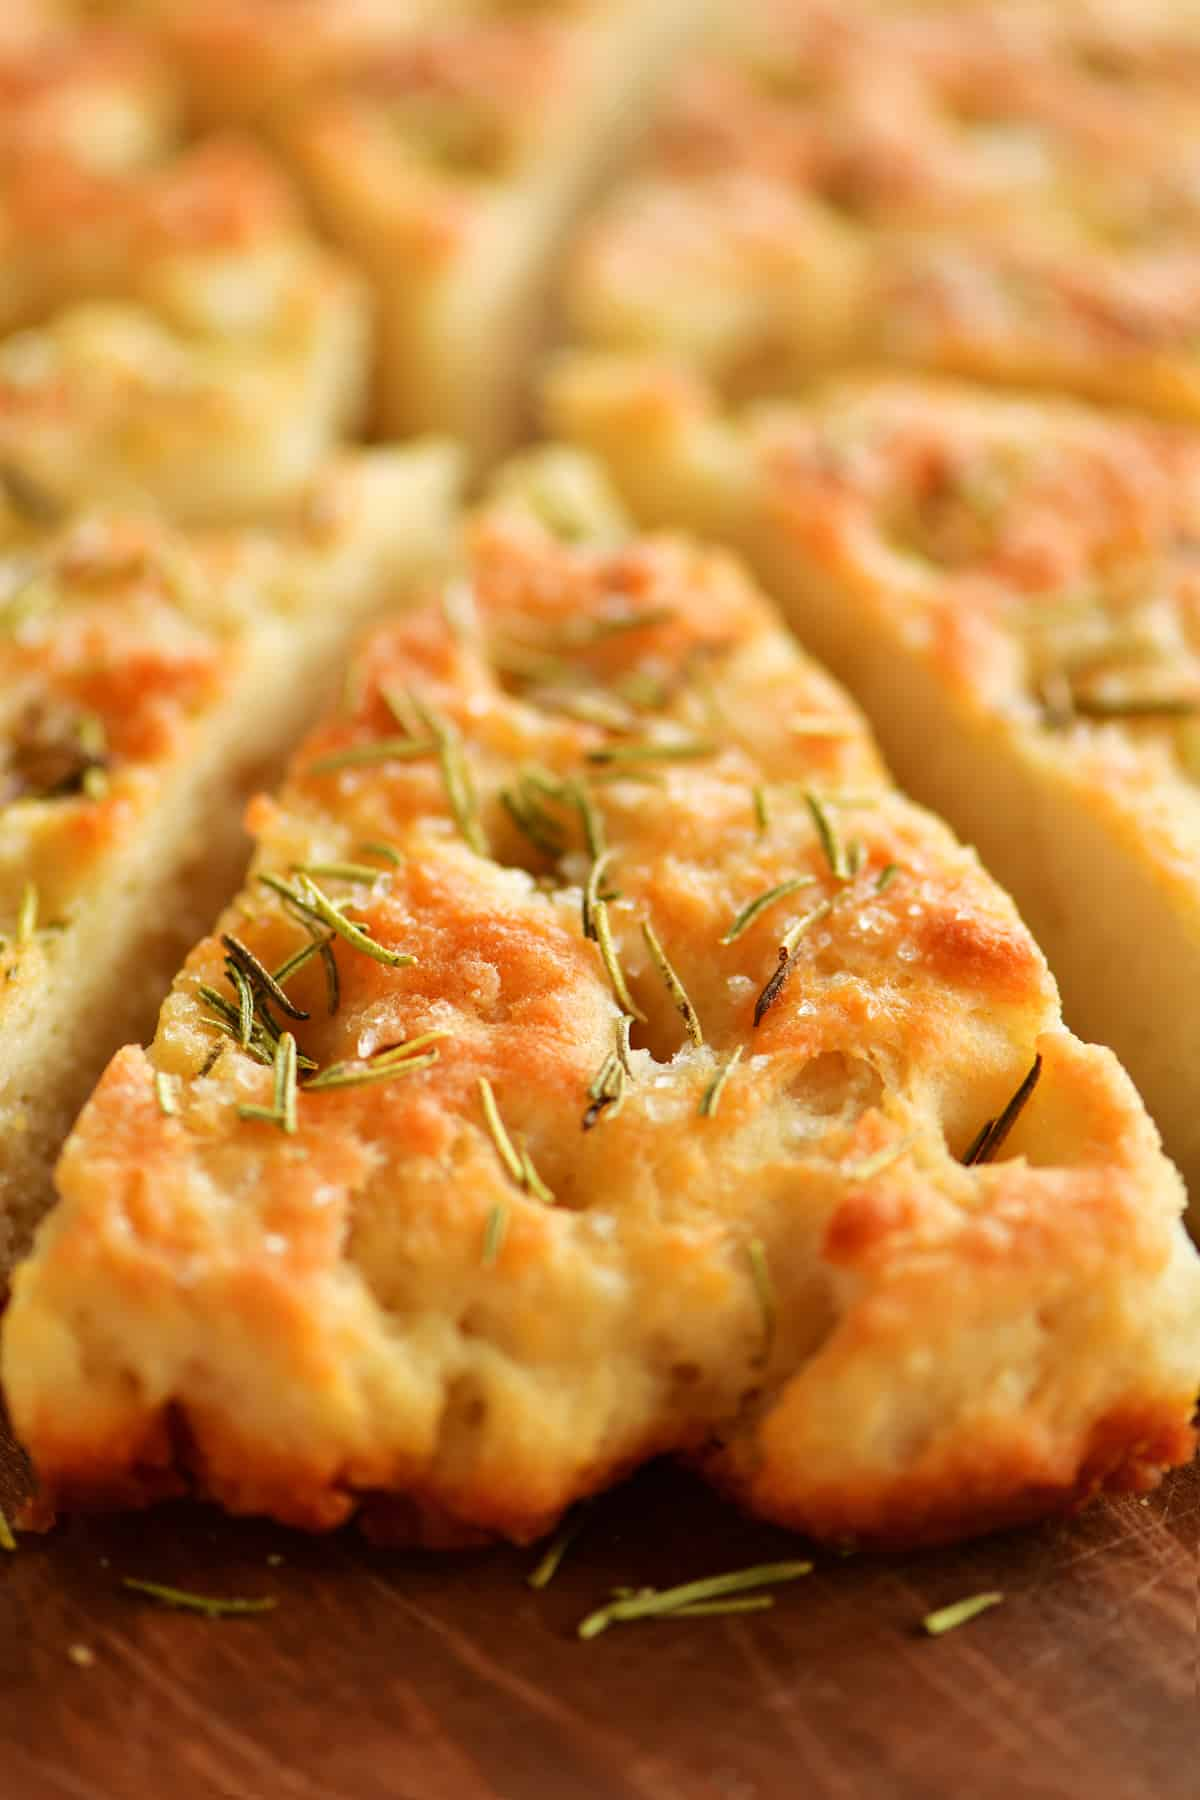 slice of two ingredient dough focaccia bread with rosemary on top